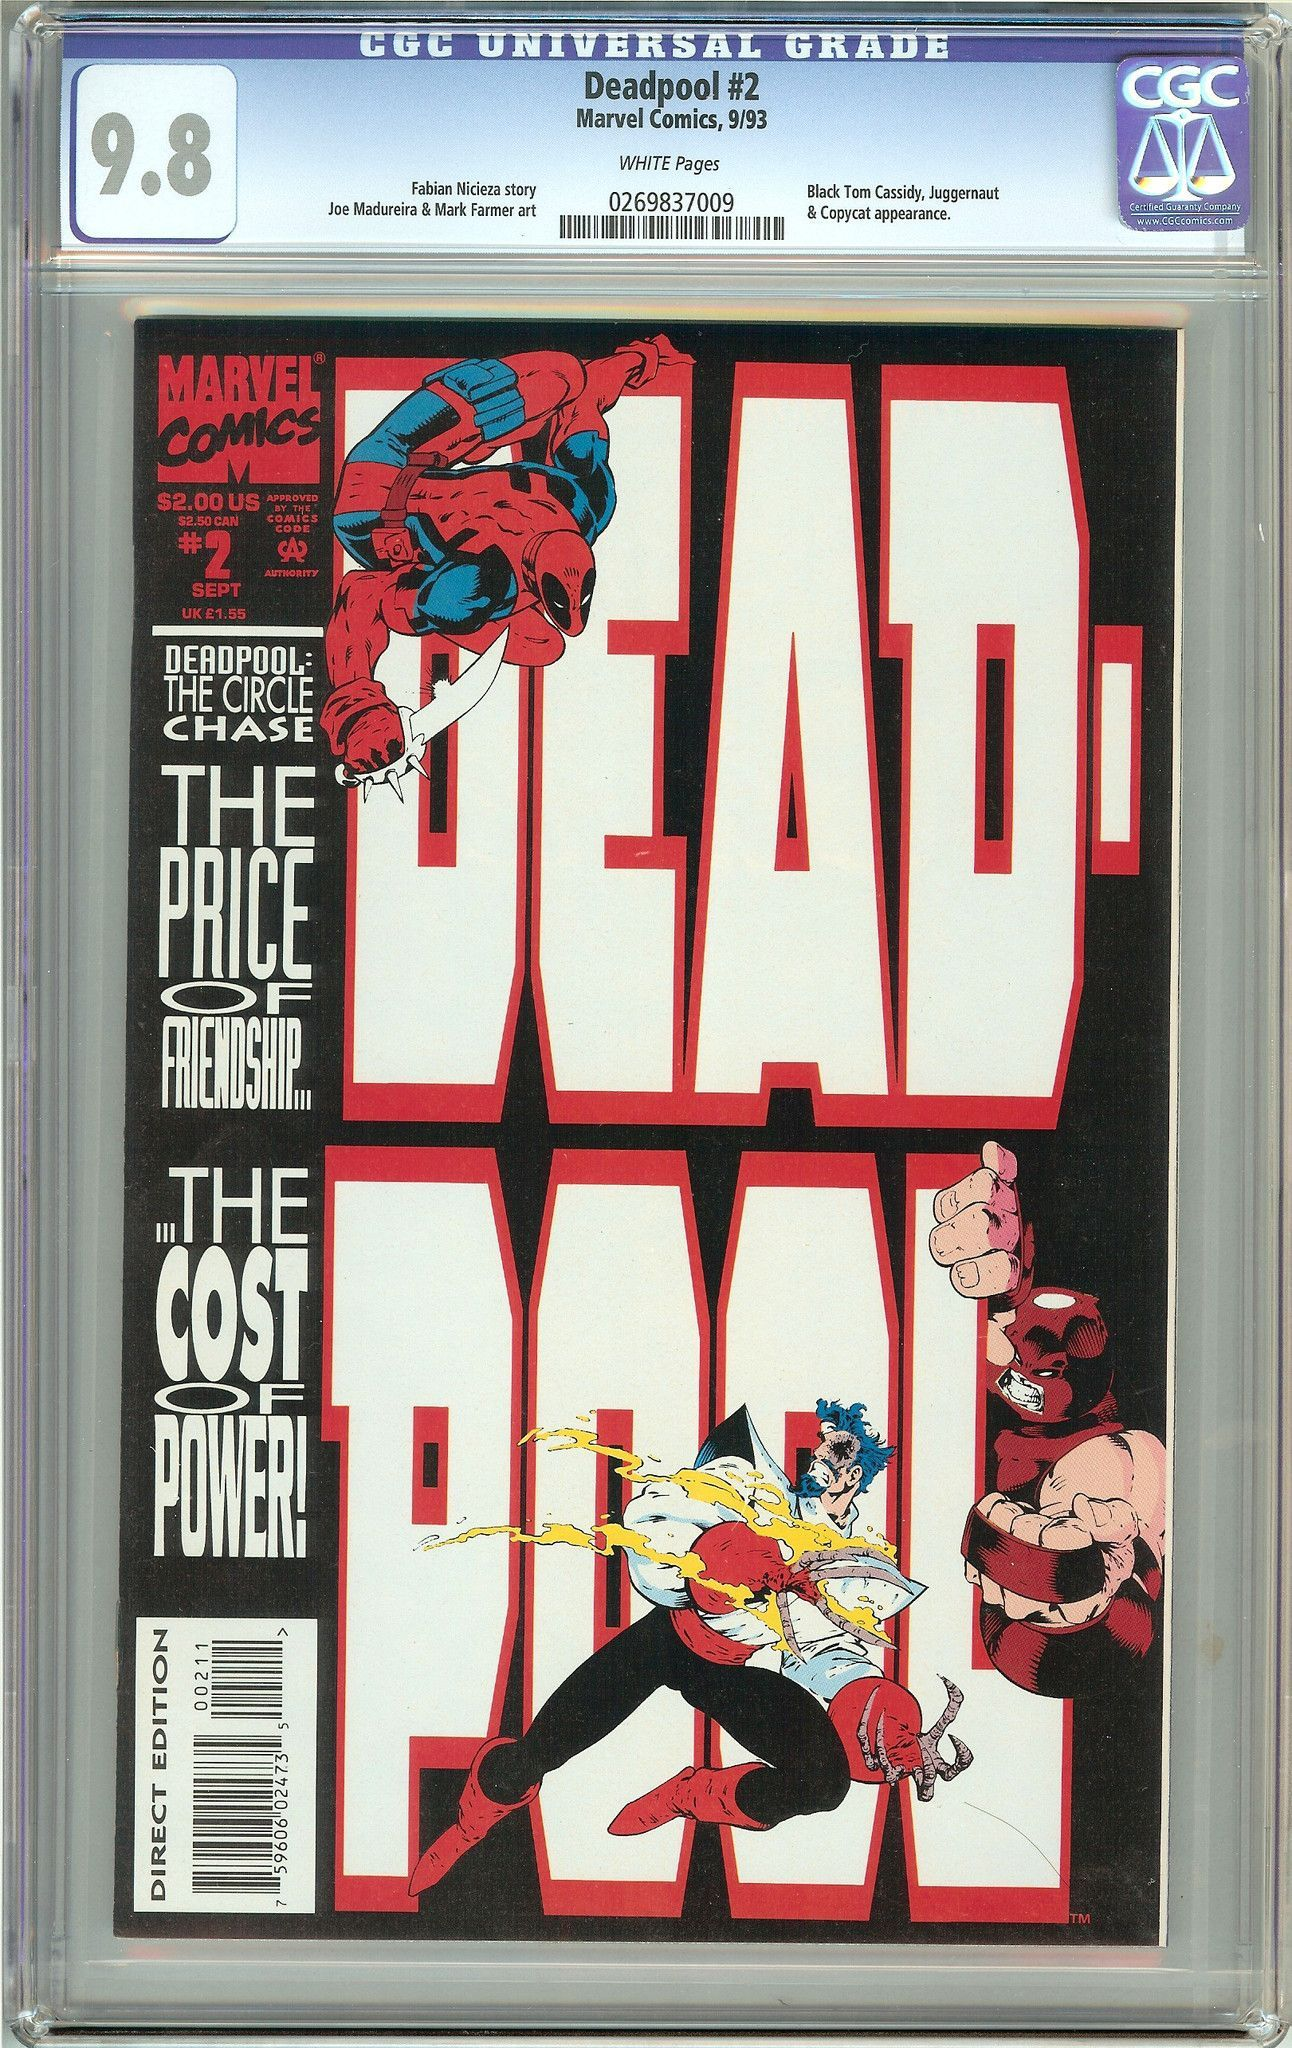 Deadpool #2 The Circle Chase (1993) CGC 9.8 White Pages 0269837009